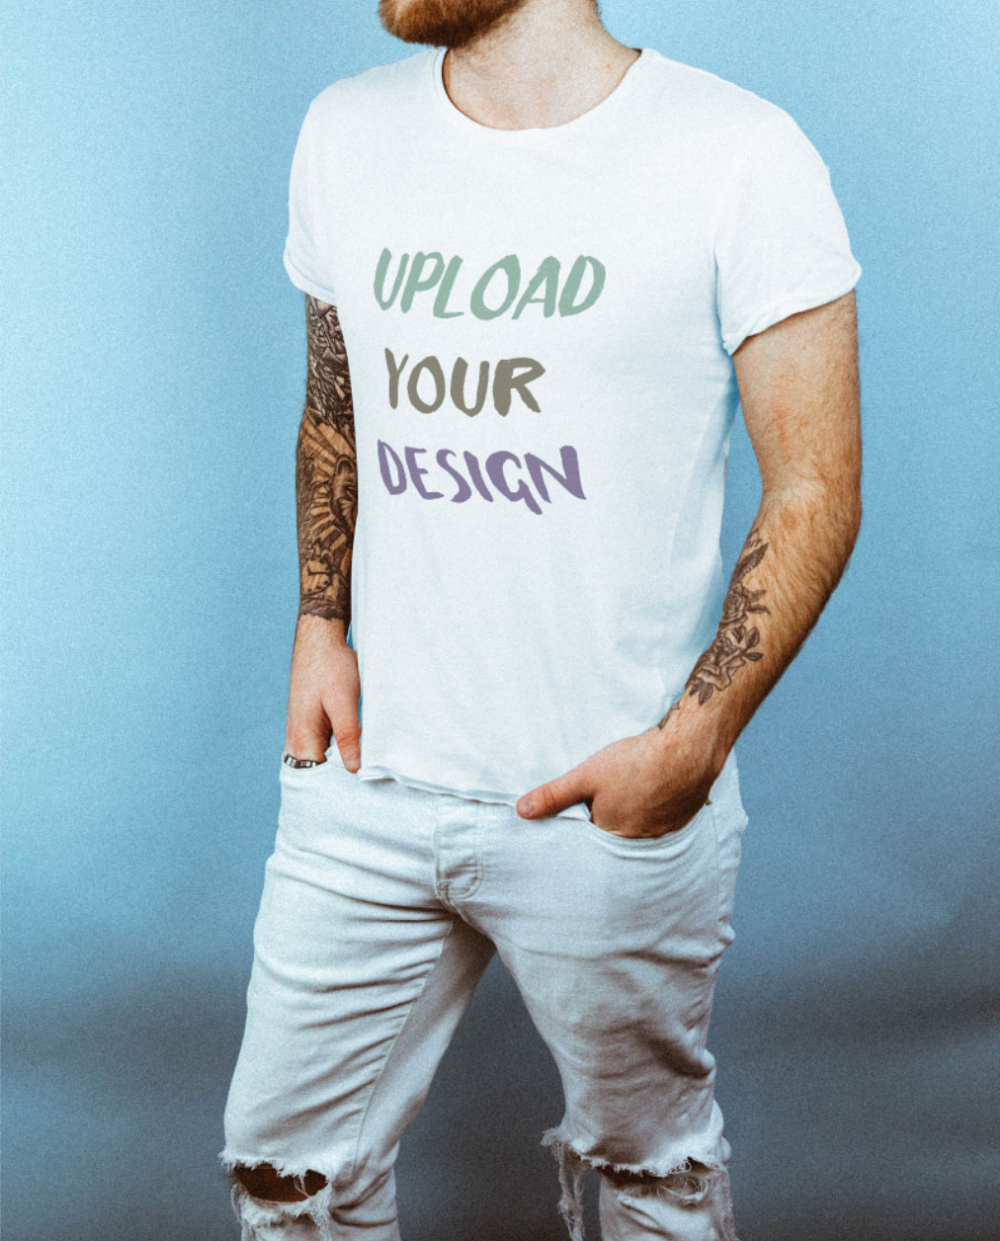 Download T Shirt Mockup Free Mockup Download Shirt Mockup Clothing Mockup Tshirt Mockup